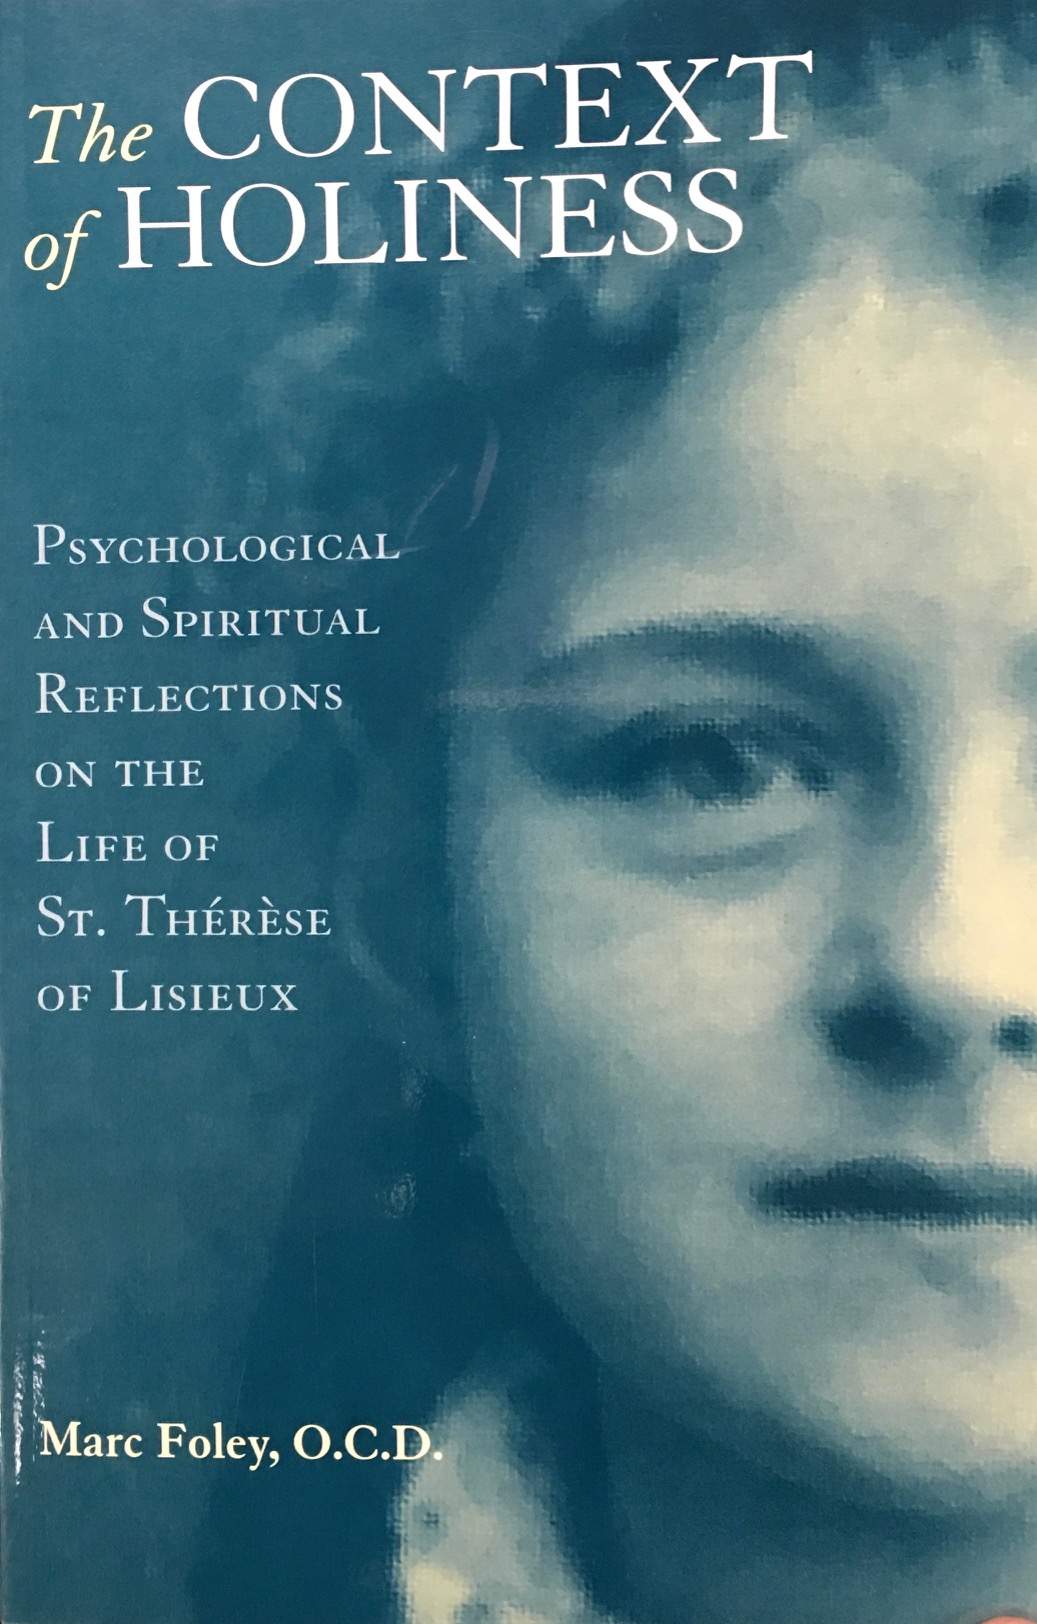 Image for The Context of Holiness: Psychological and Spiritual Reflections on the Life of Saint Therese of Lisieux